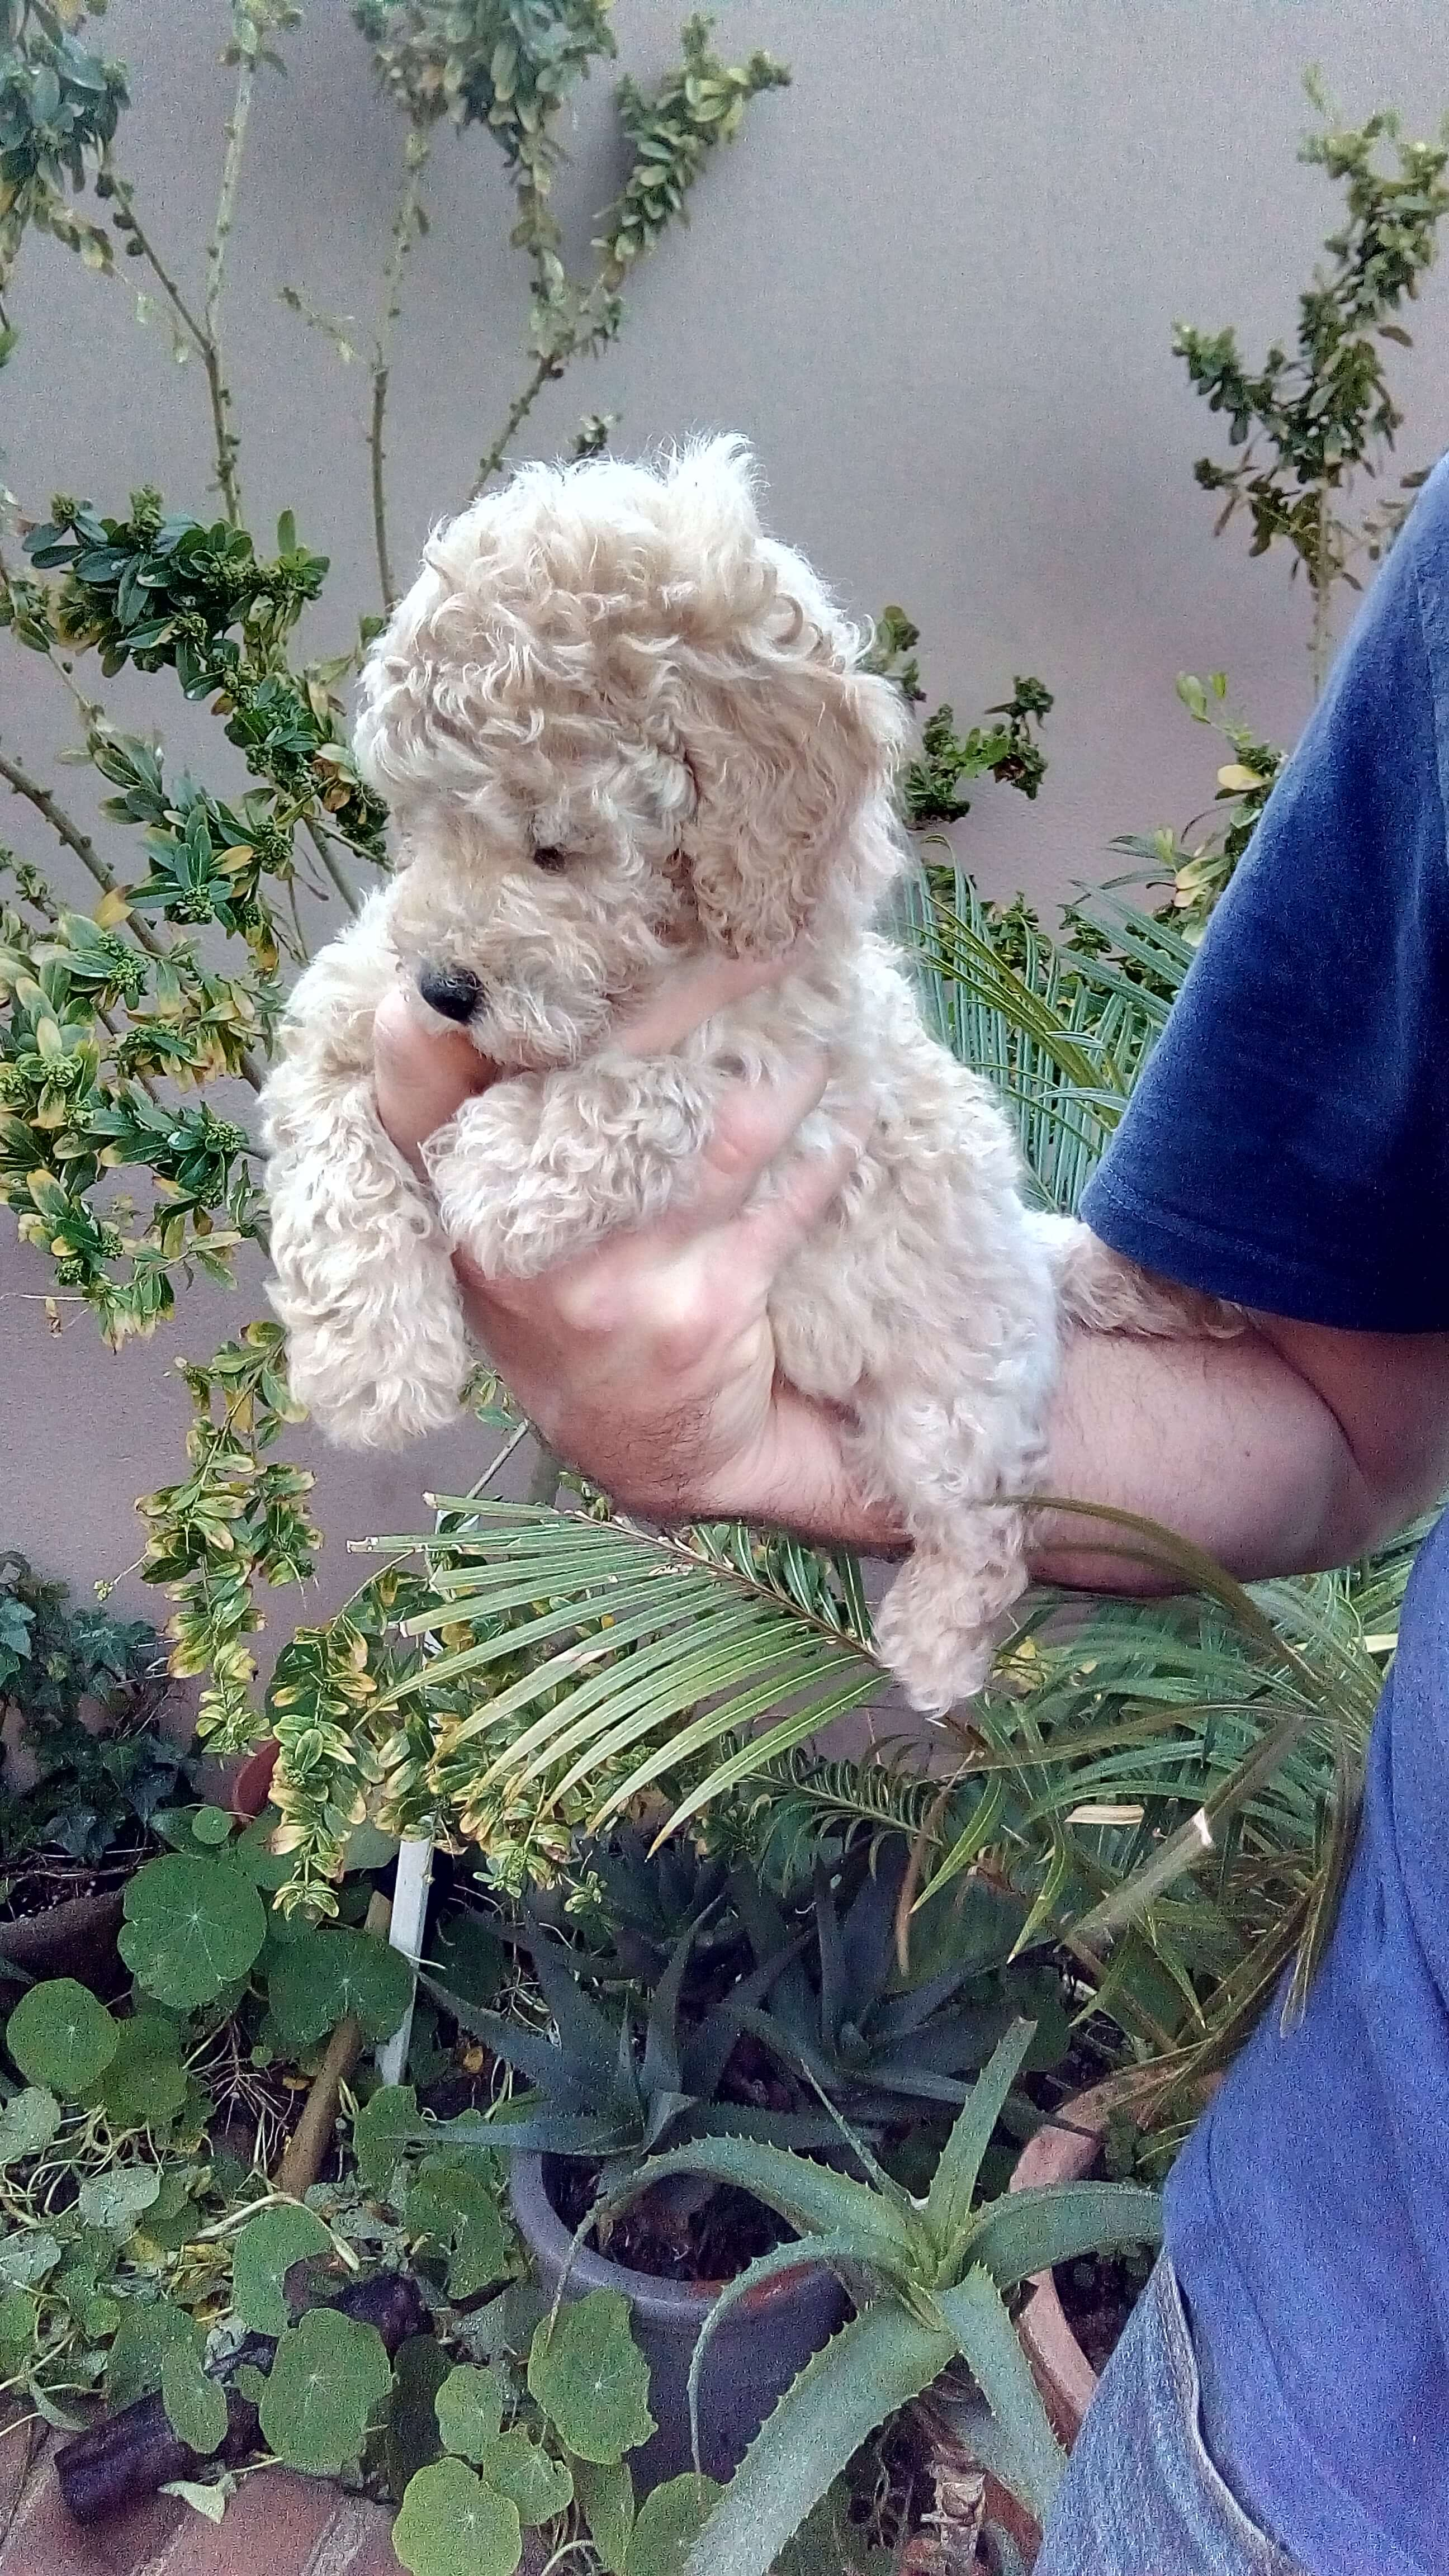 Poodle Puppies for Sale in Cape Town by Jannie Van Wyk